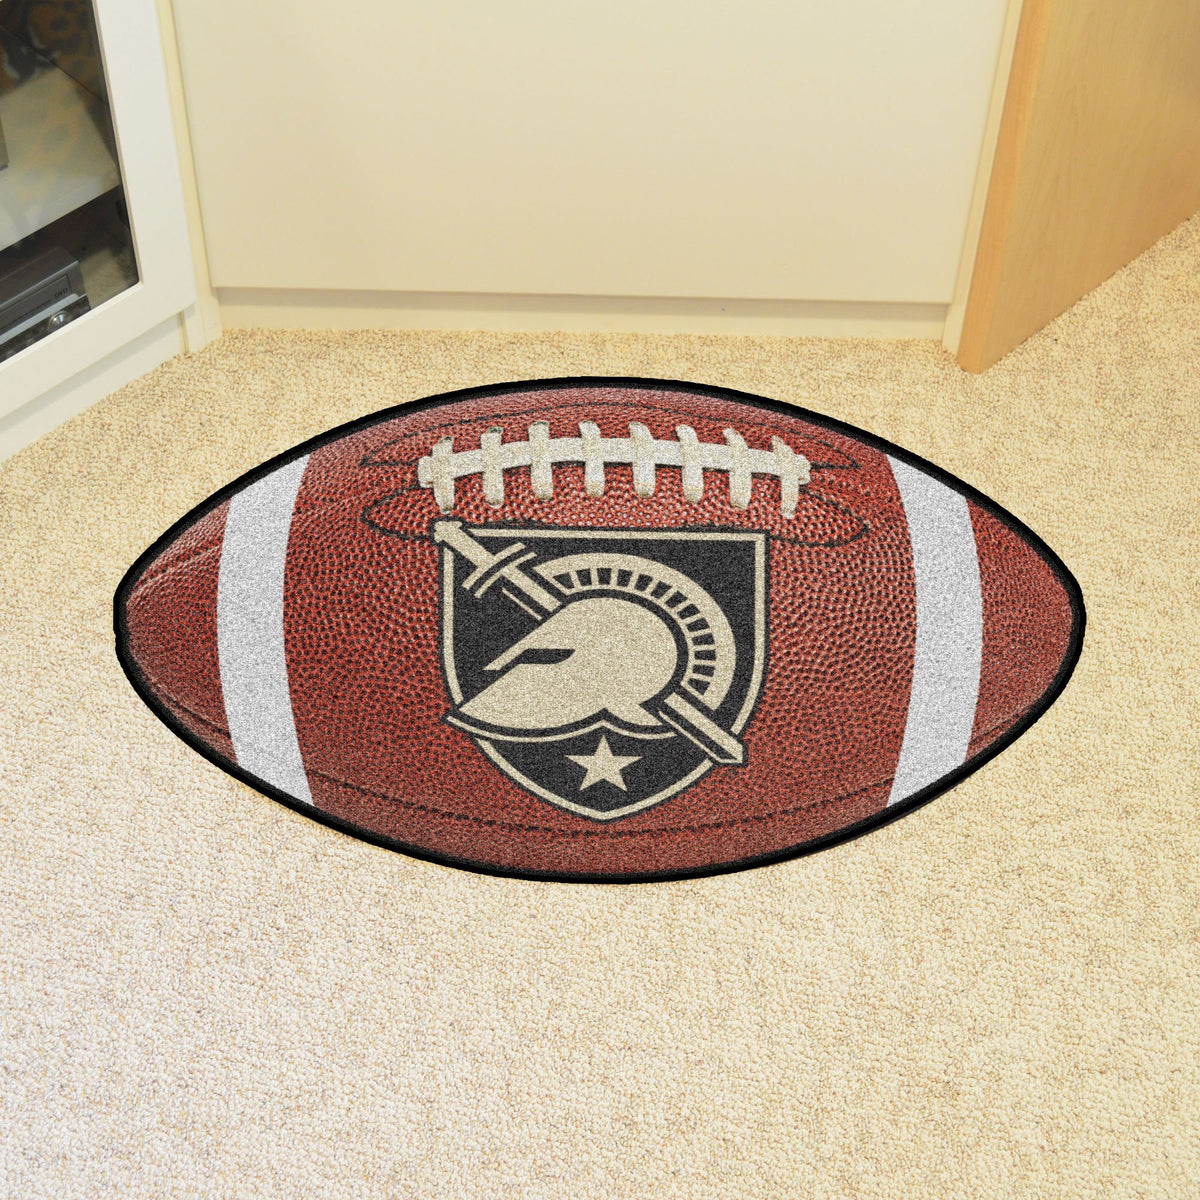 Collegiate - Football Mat: A - K Collegiate Mats, Rectangular Mats, Football Mat, Collegiate, Home Fan Mats Army West Point